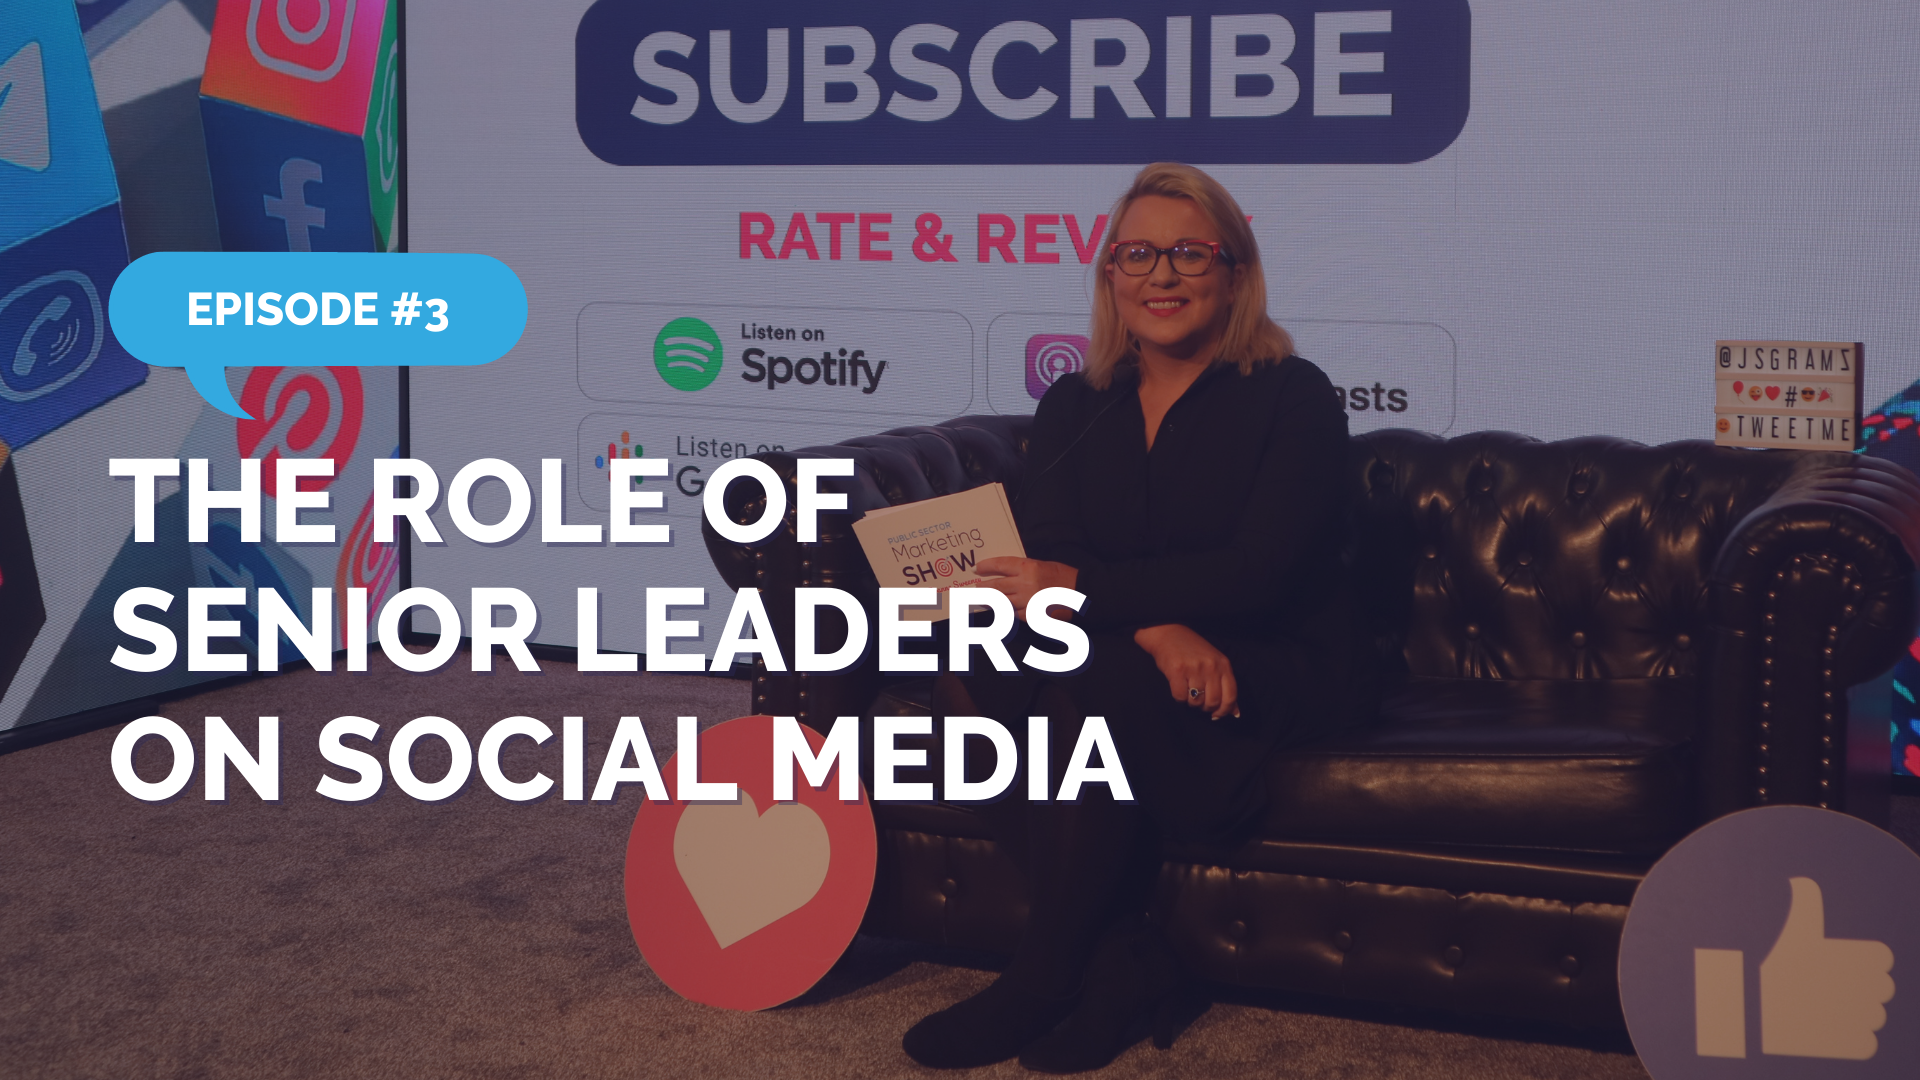 Episode 3 - The Role of Senior Leaders on Social Media